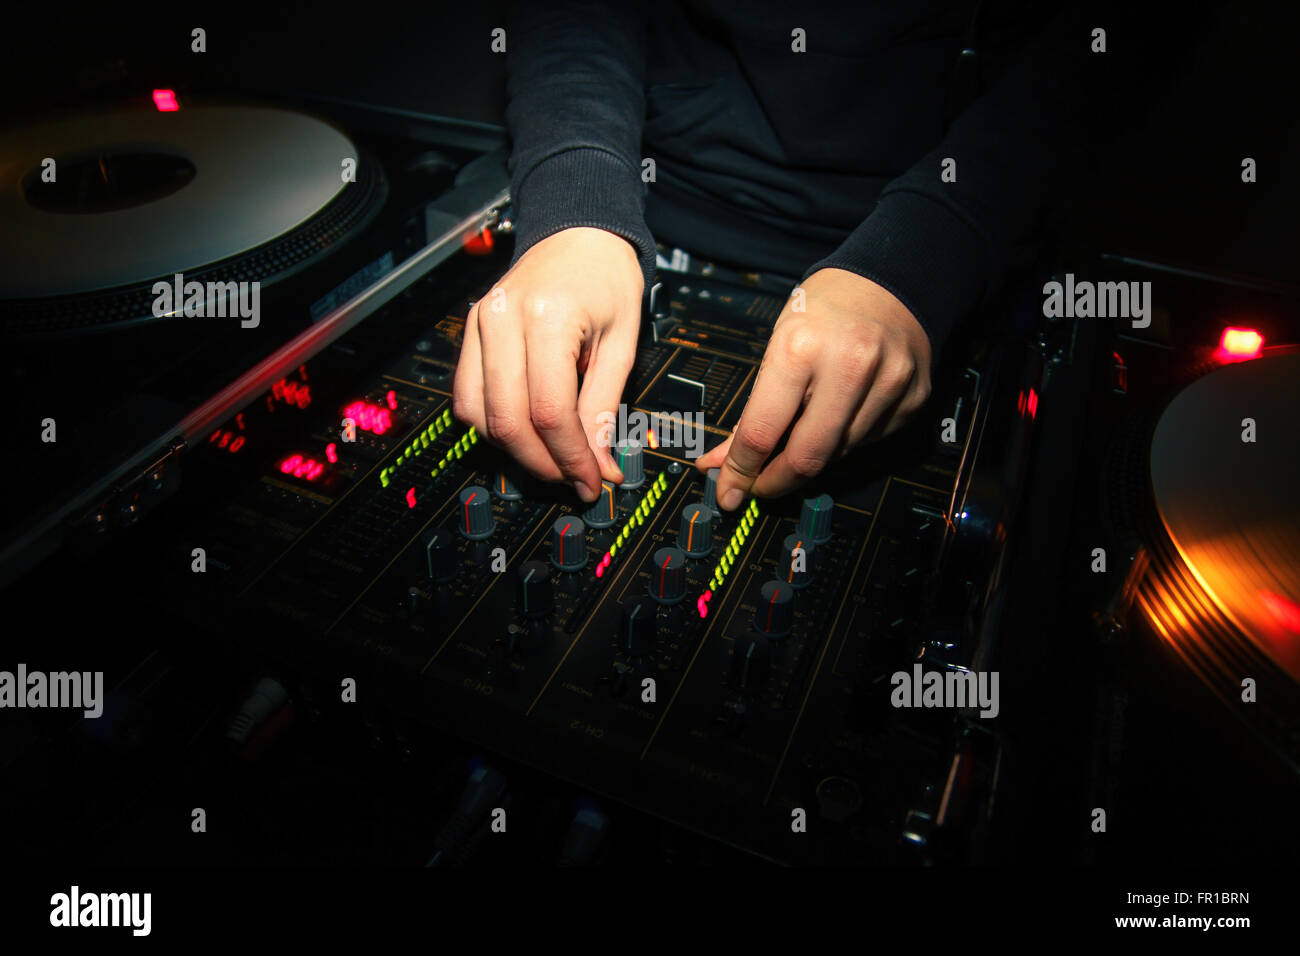 Hands of a female DJ mixing two tracks on professional audio equipment - Stock Image